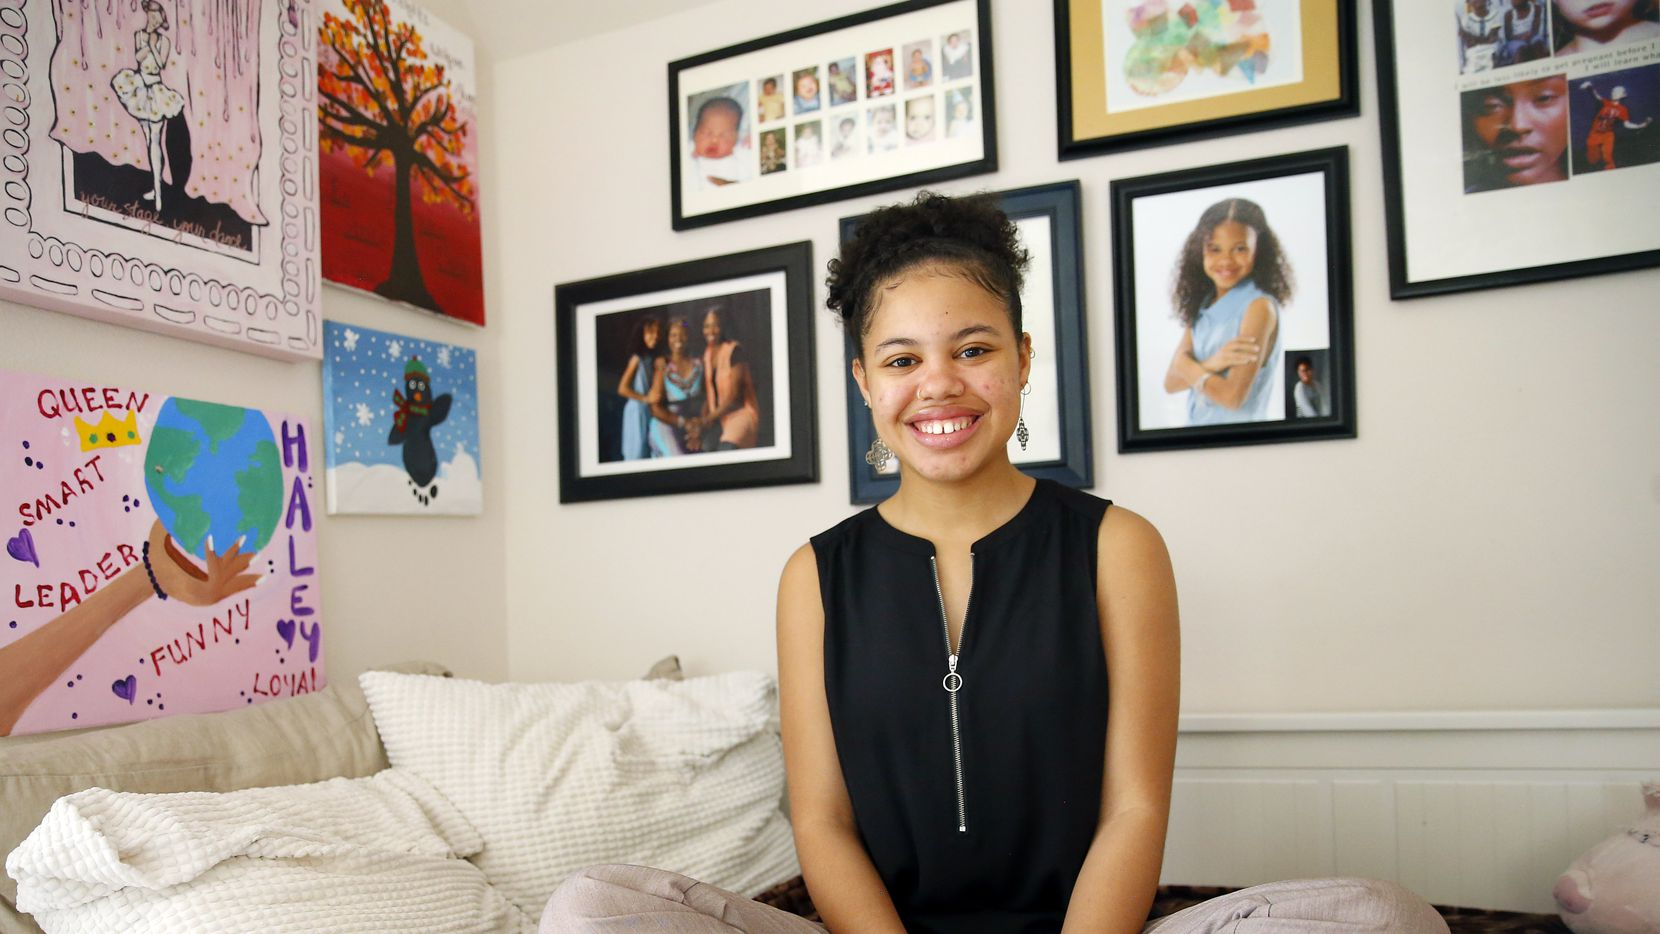 Teen phenom Haley Taylor Schlitz, 16, who graduated from high school at 13, is preparing to attend Southern Methodist University's Dedman School of Law this fall, one of nine schools that accepted her, according to the American Bar Association. The Keller, Texas teenager had an accelerated education following her graduation from home schooling in 2013. She since attended Tarrant County College and then Texas Woman's University.  She is photographed at her family's home, Saturday, March 23, 2019.